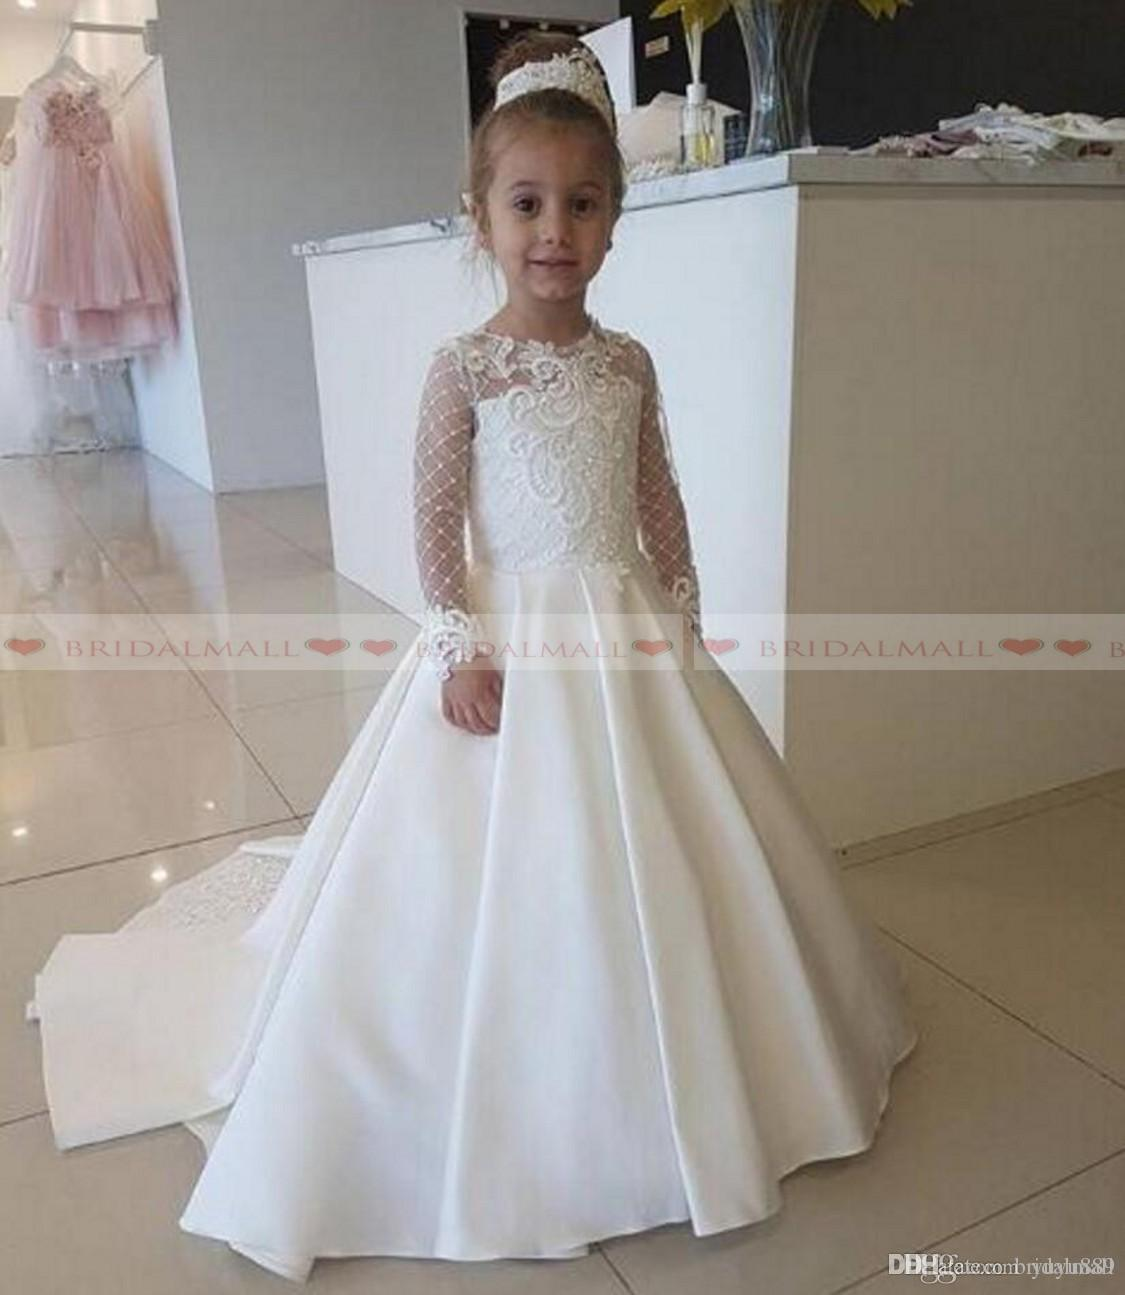 Satin Lace Applique Flower Girl Dress For Wedding Party Long Sleeves Little Kids Girls First Communion Gowns Christmas Pageant